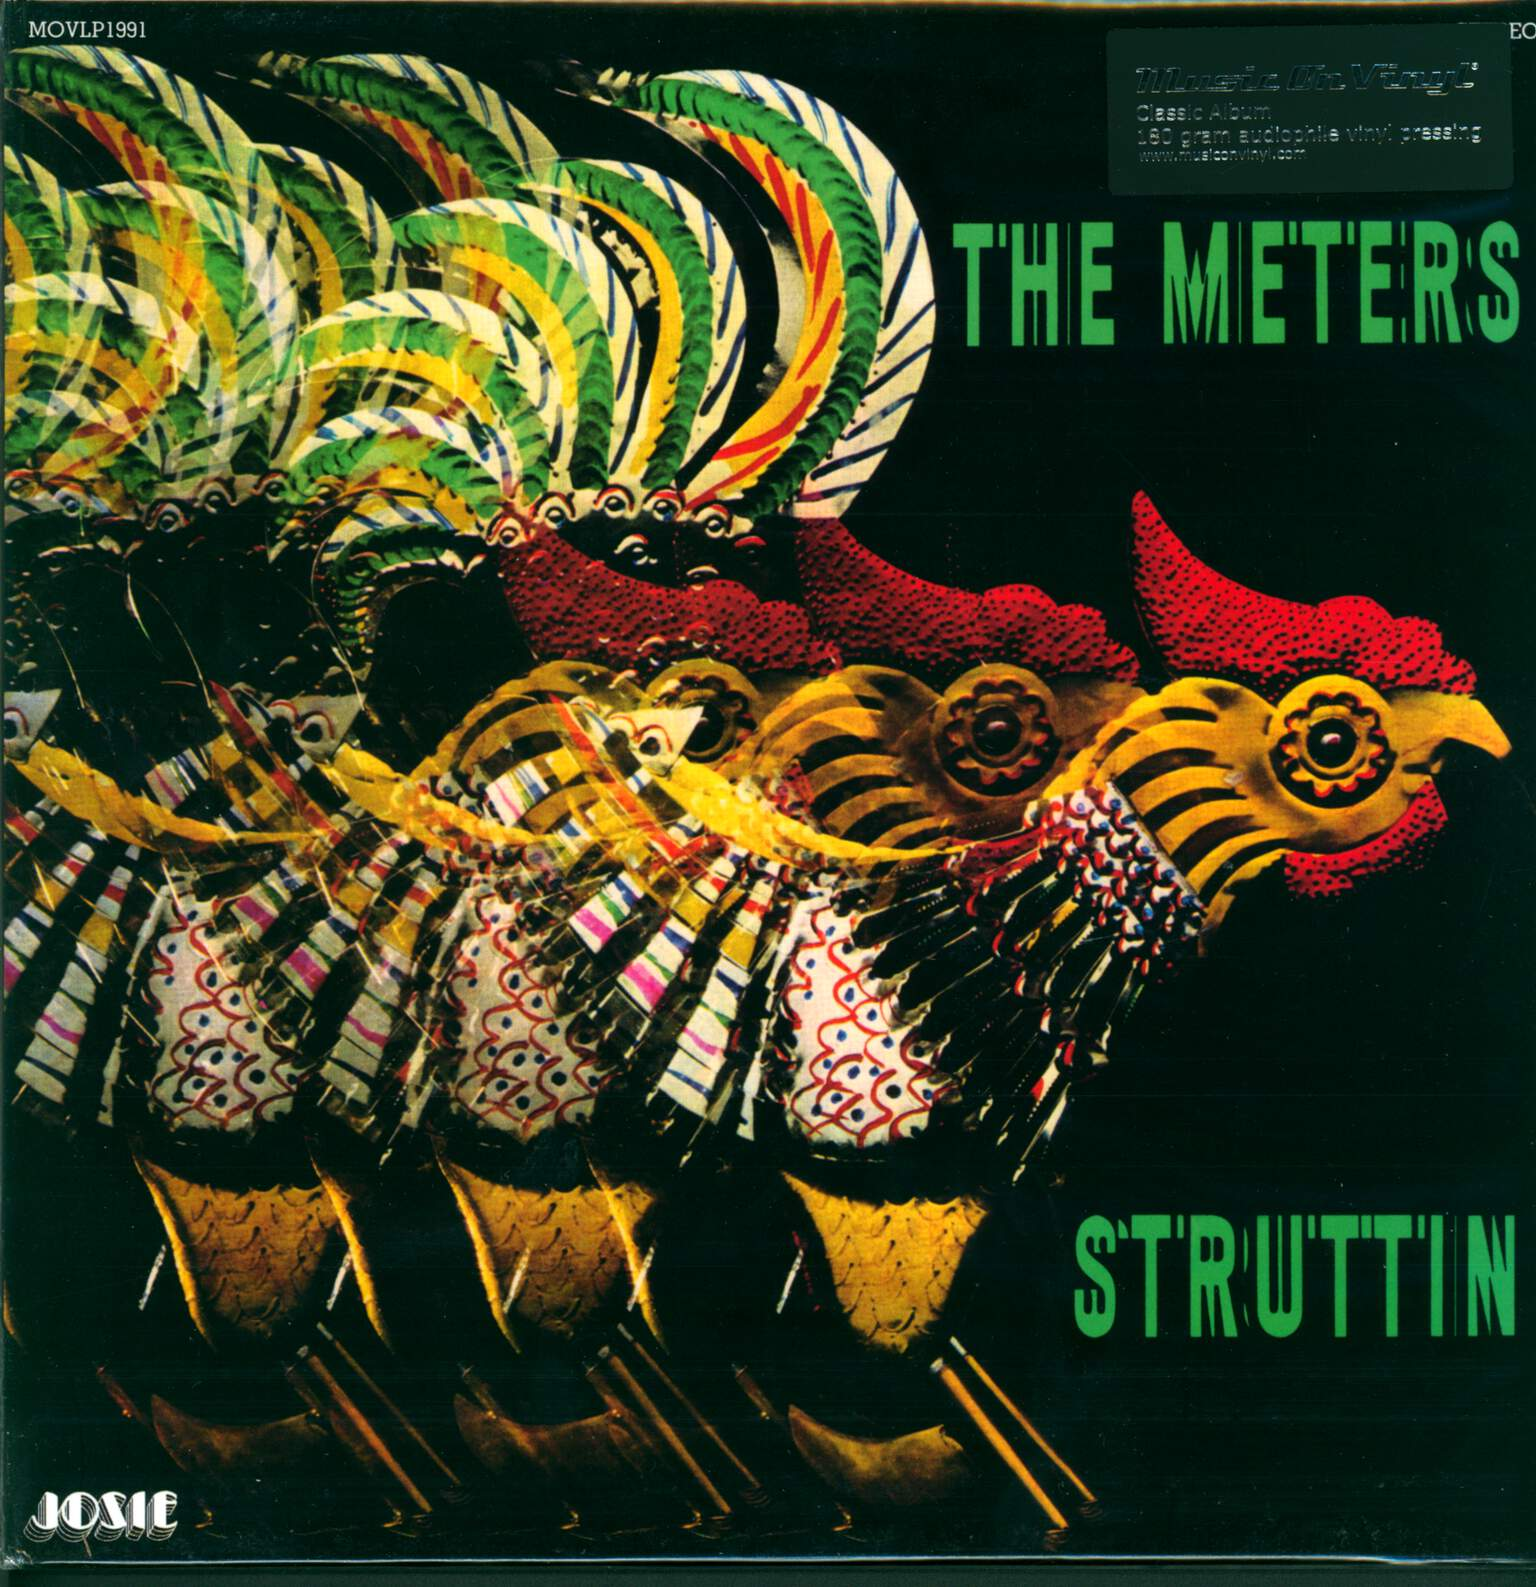 The Meters: Struttin', 1×LP (Vinyl)